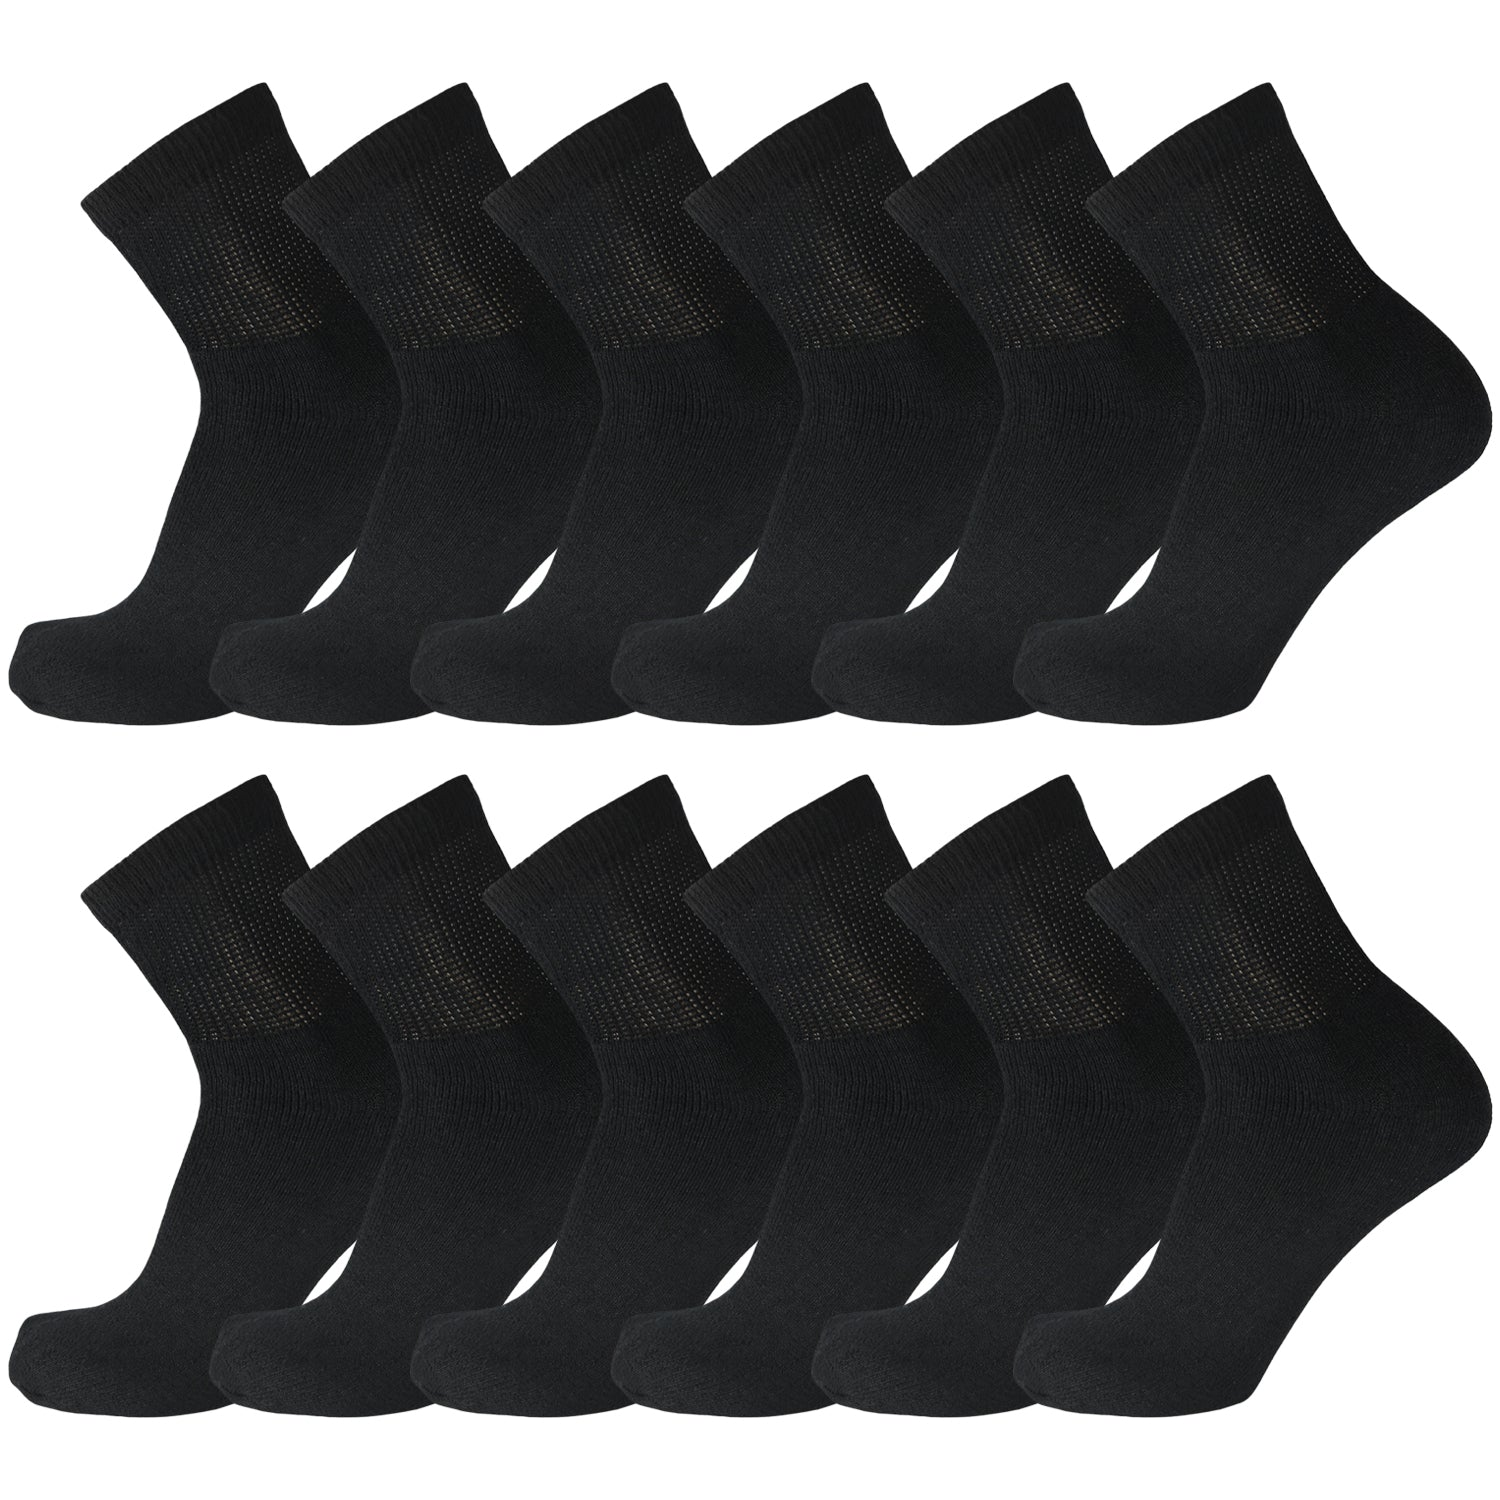 Black Non Binding Cotton Diabetic Ankle Socks 12 Pairs